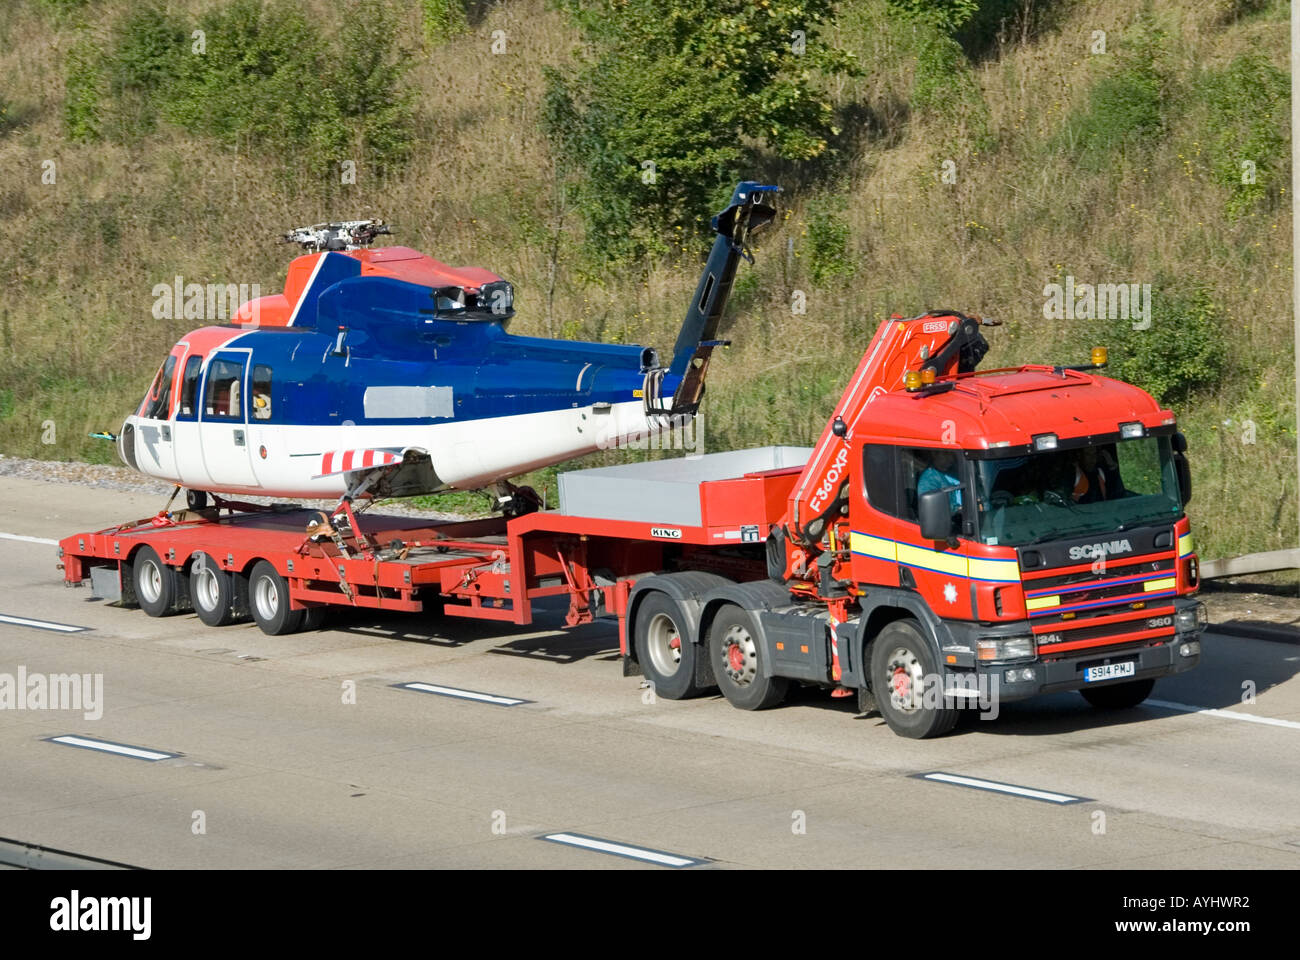 M25 motorway helicopter fuselage on low loader trailer behind Scania lorry - Stock Image